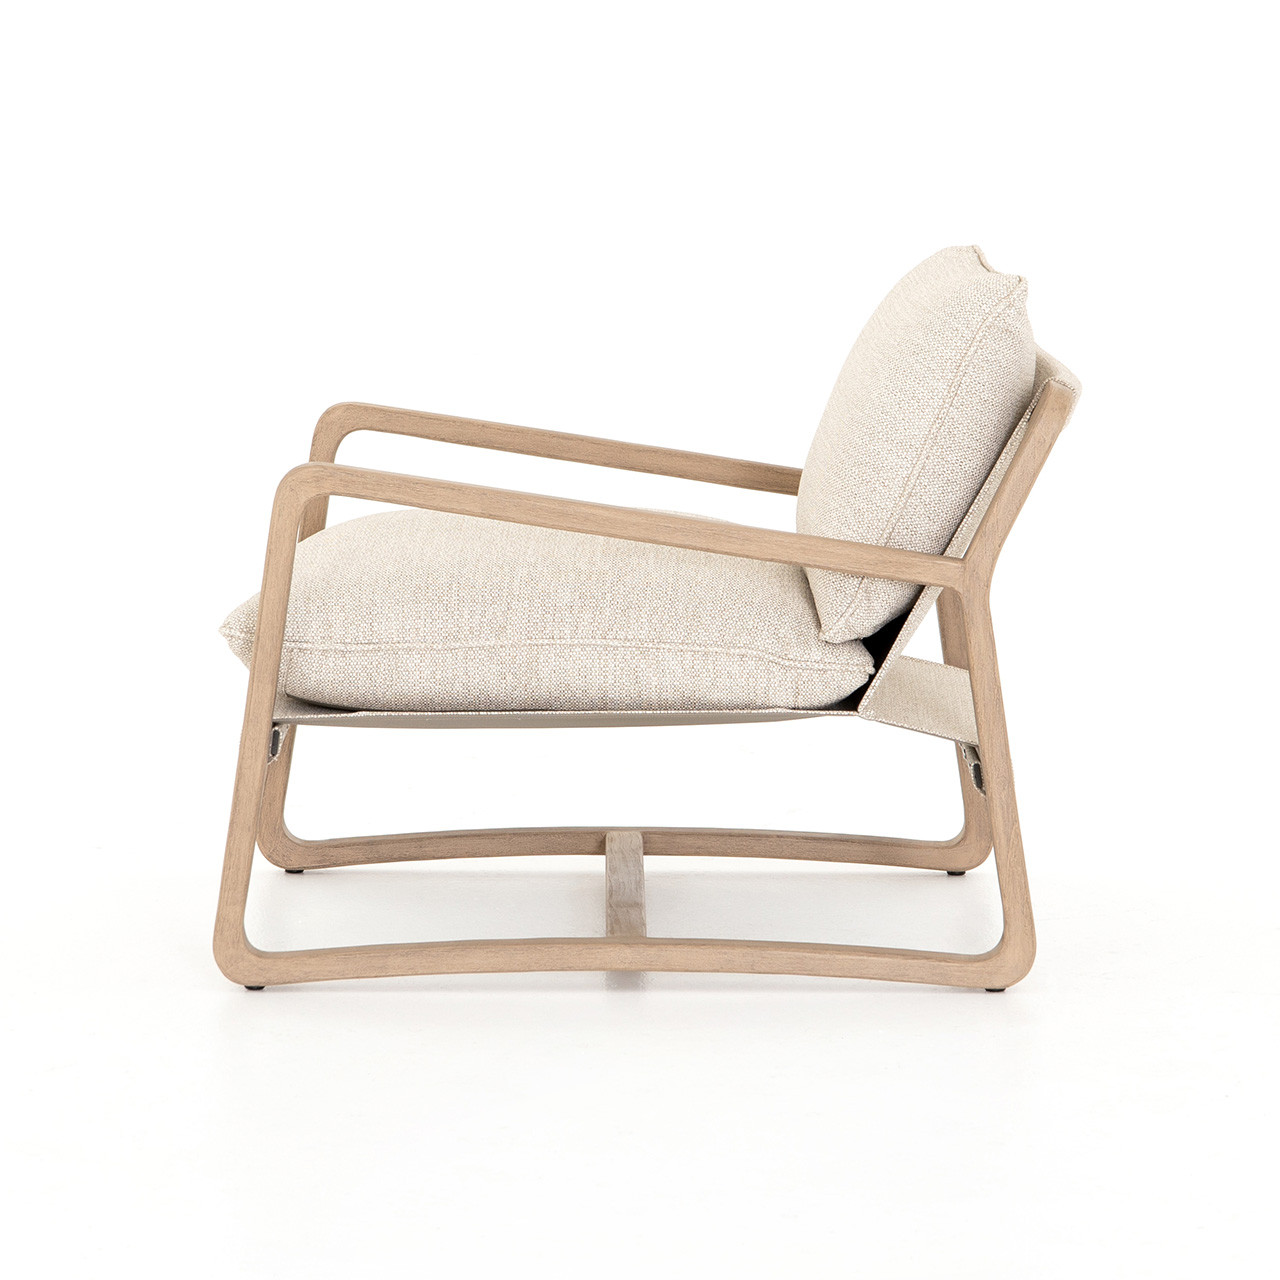 Sunset Cliffs Outdoor Lounge Chair - Washed Brown